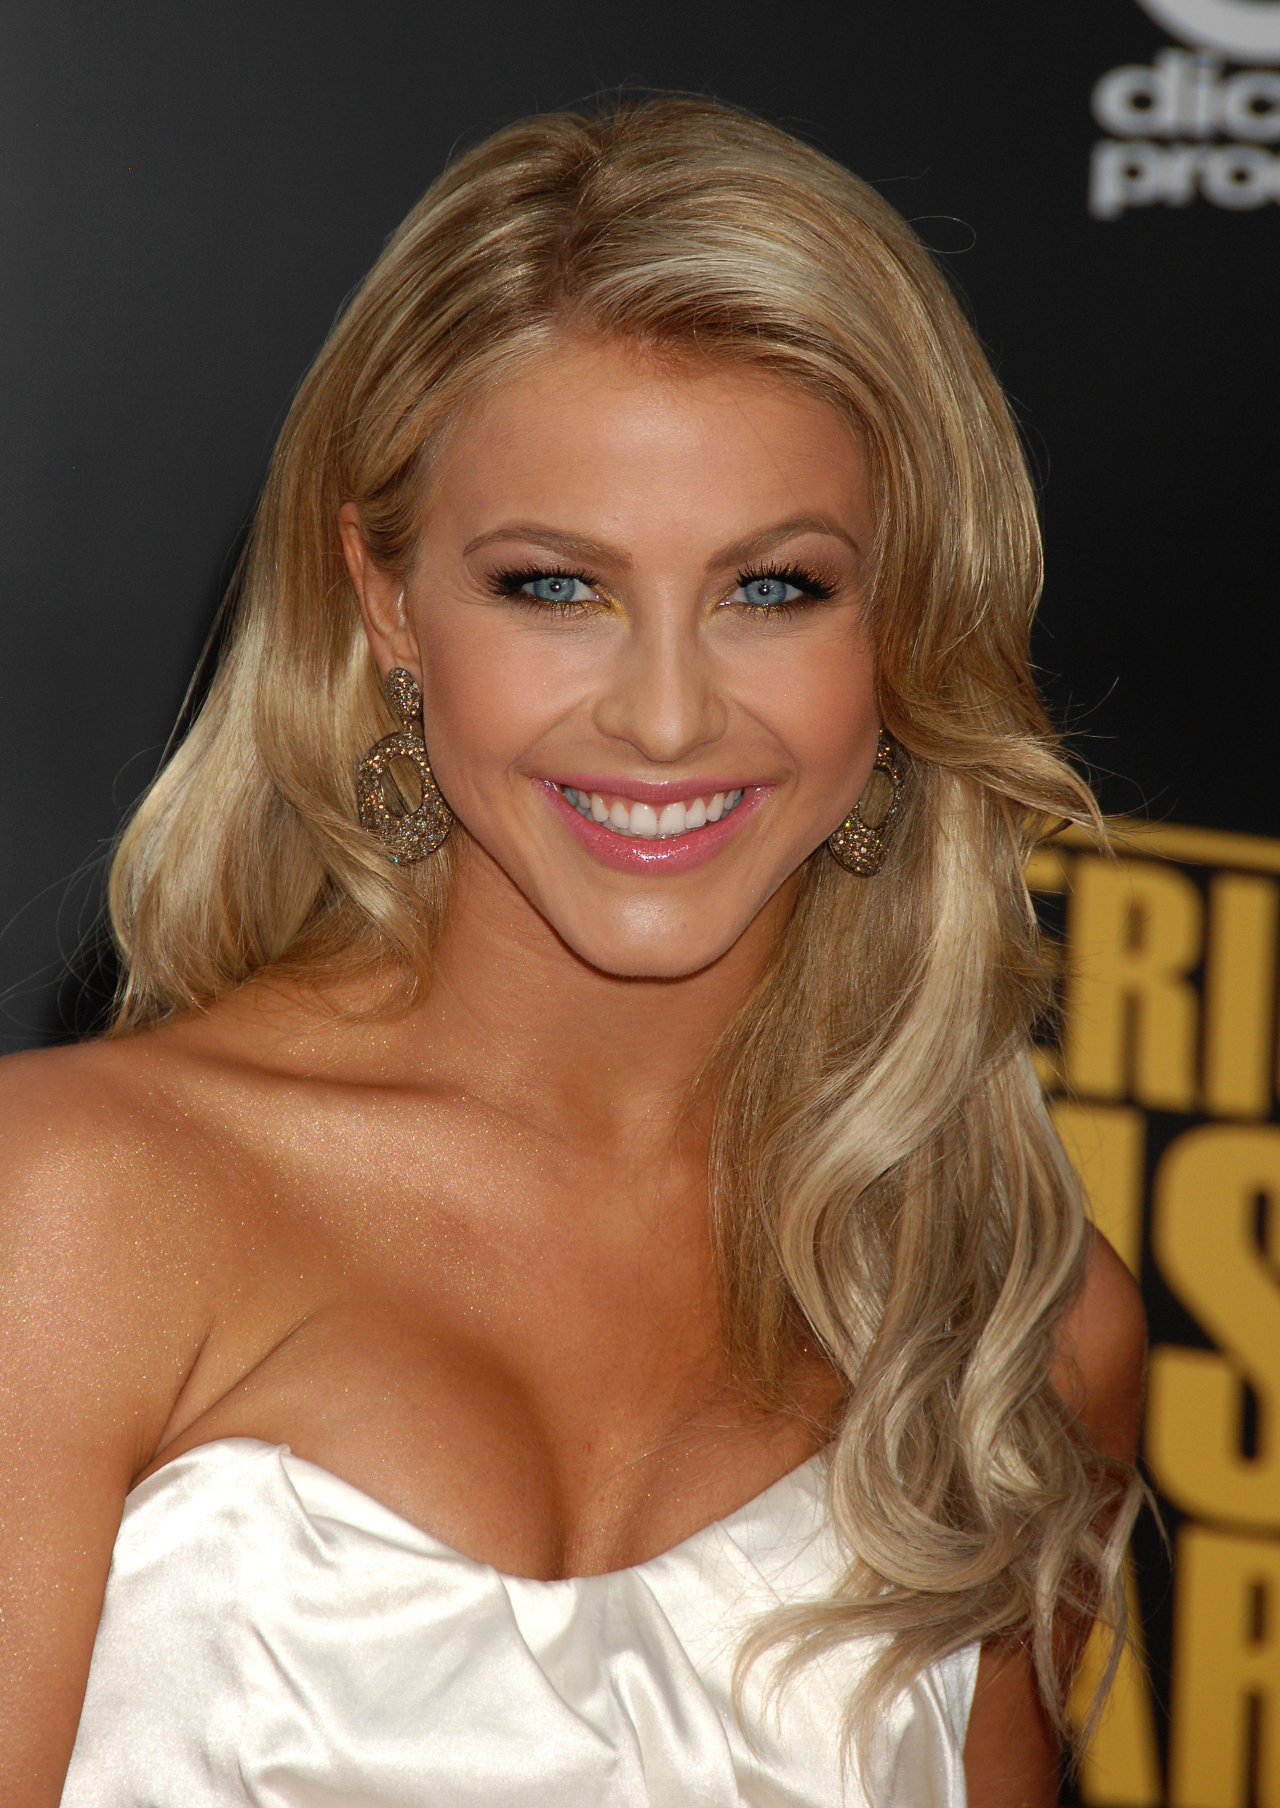 julianne hough wallpapers (12711). top rated julianne hough photos